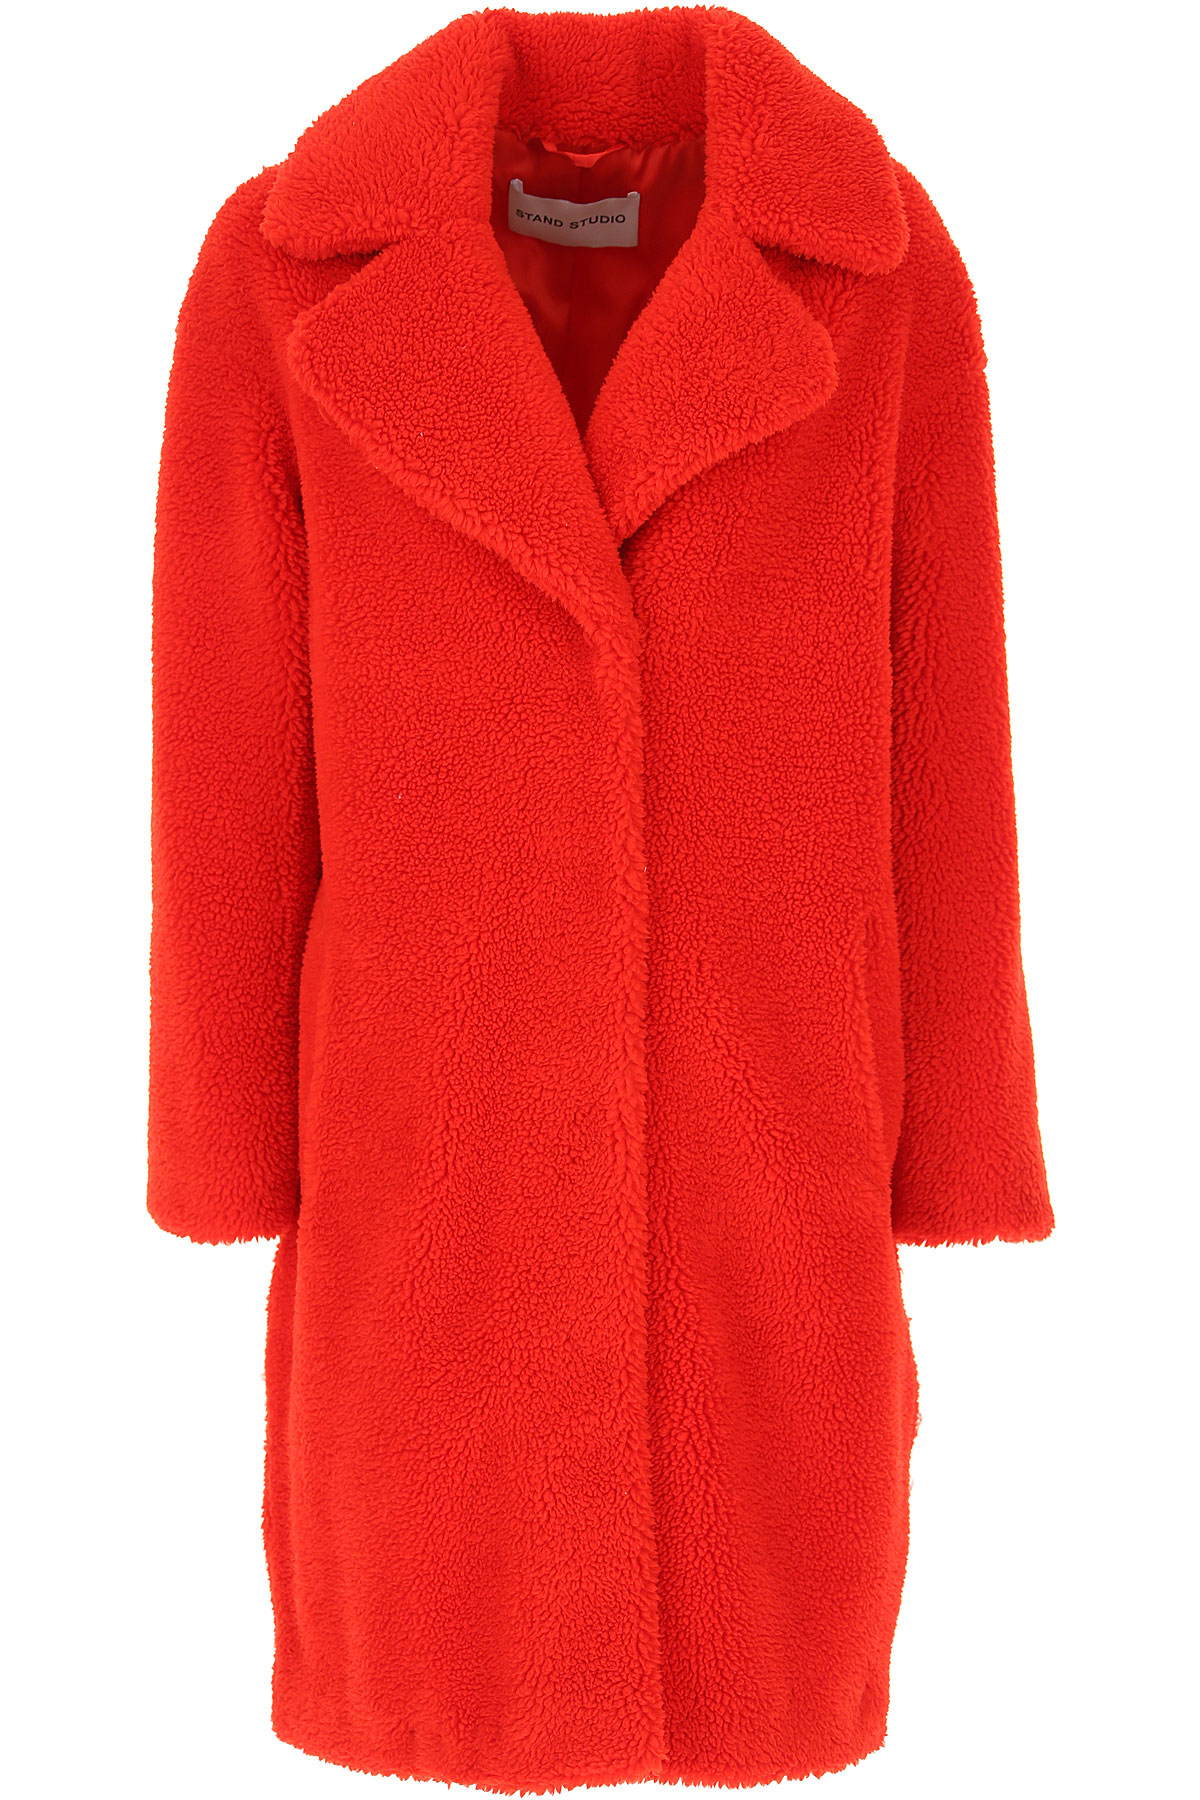 Stand Studio Jacket for Women On Sale, Red, polyester, 2019, 2